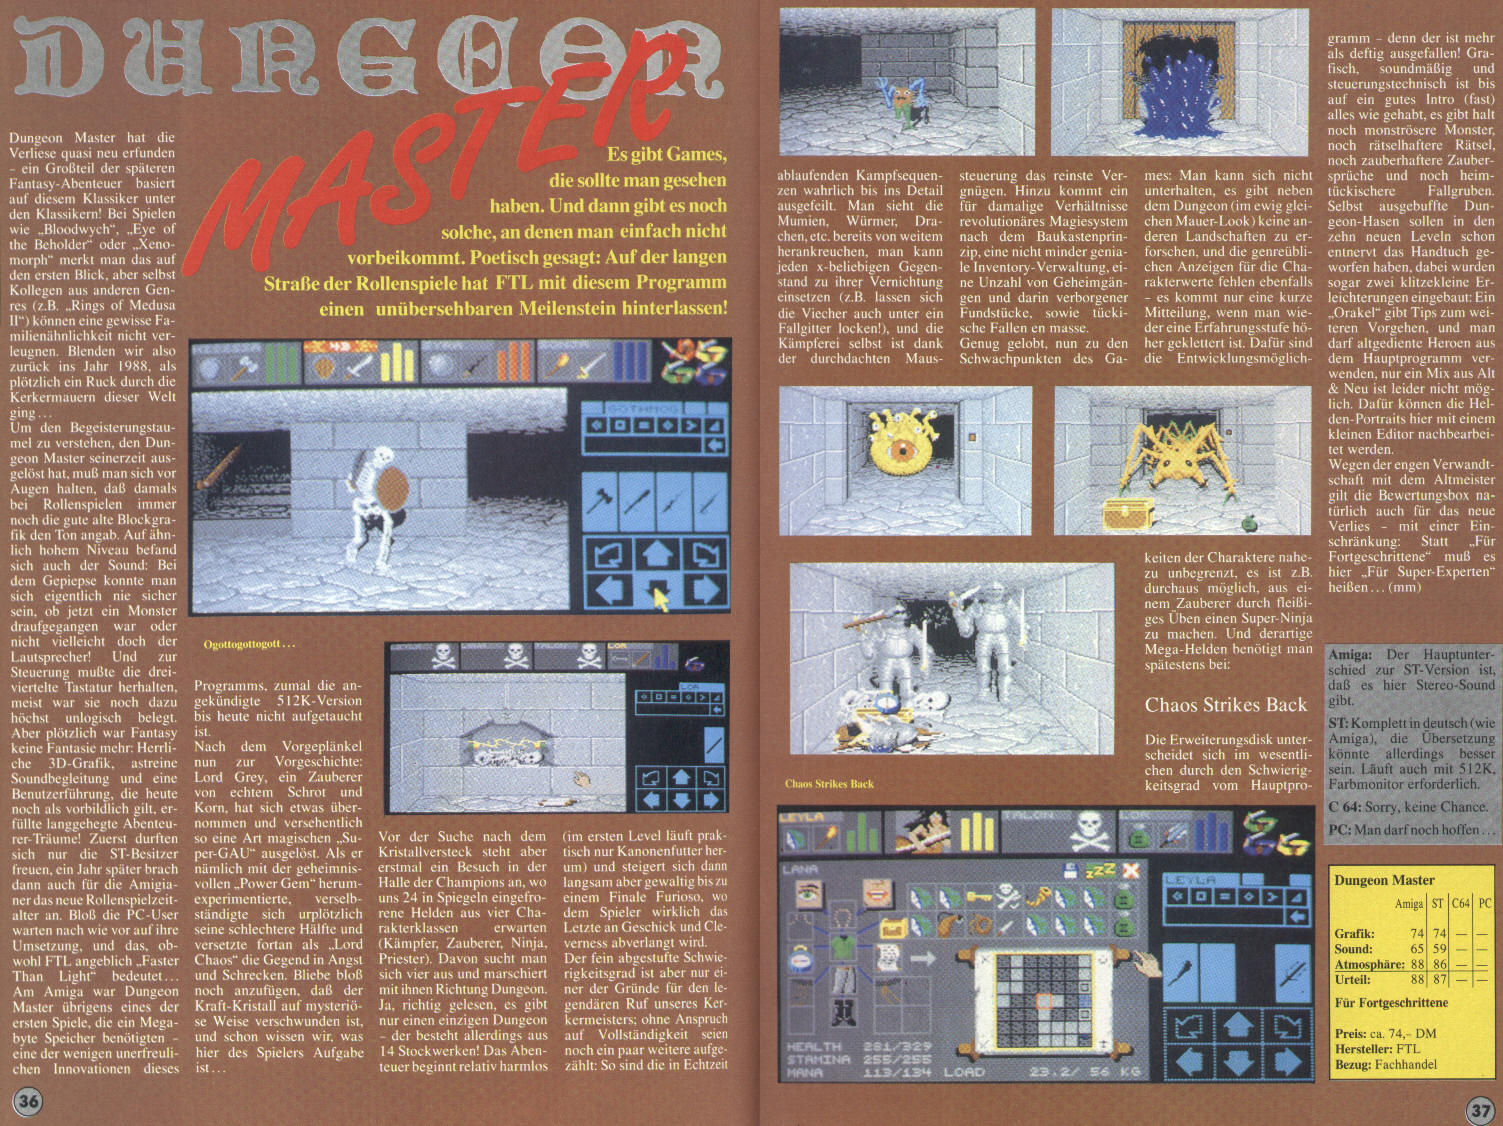 Dungeon Master for Atari ST / Amiga Review published in German magazine 'Amiga Joker', Sonderheft #3, 1992', Pages 36-37